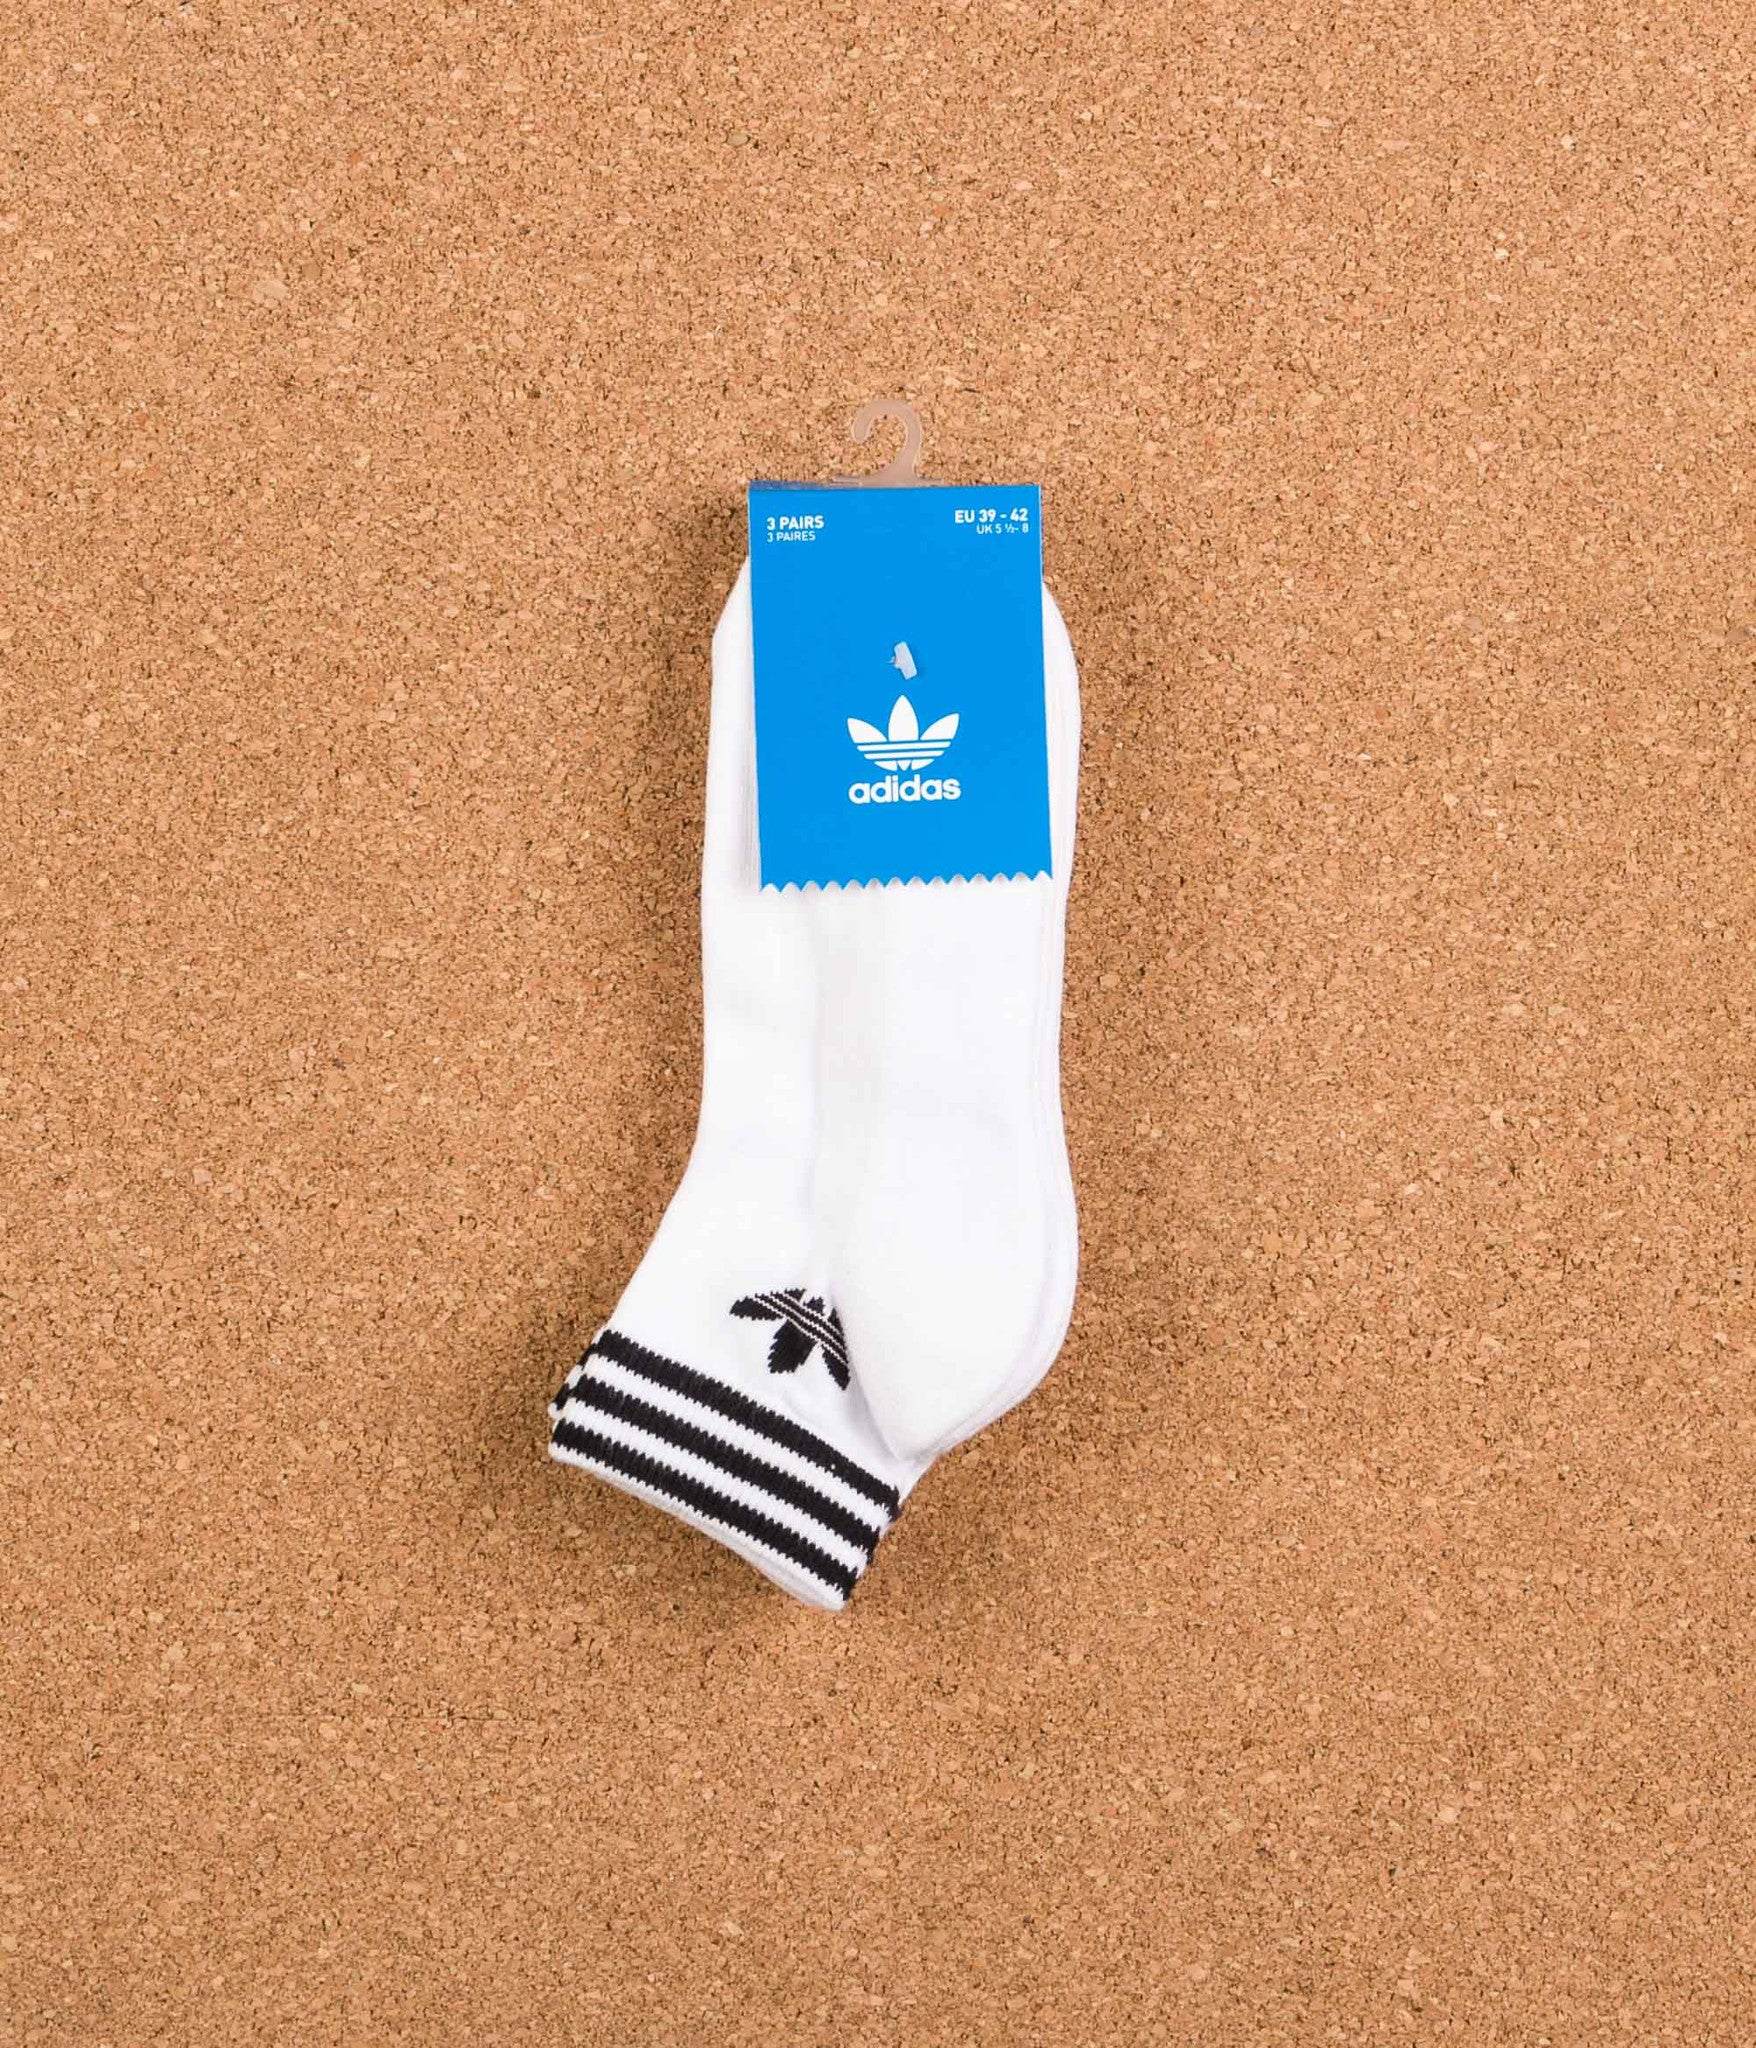 new arrivals best selling factory outlets Adidas Trefoil Ankle Socks - White